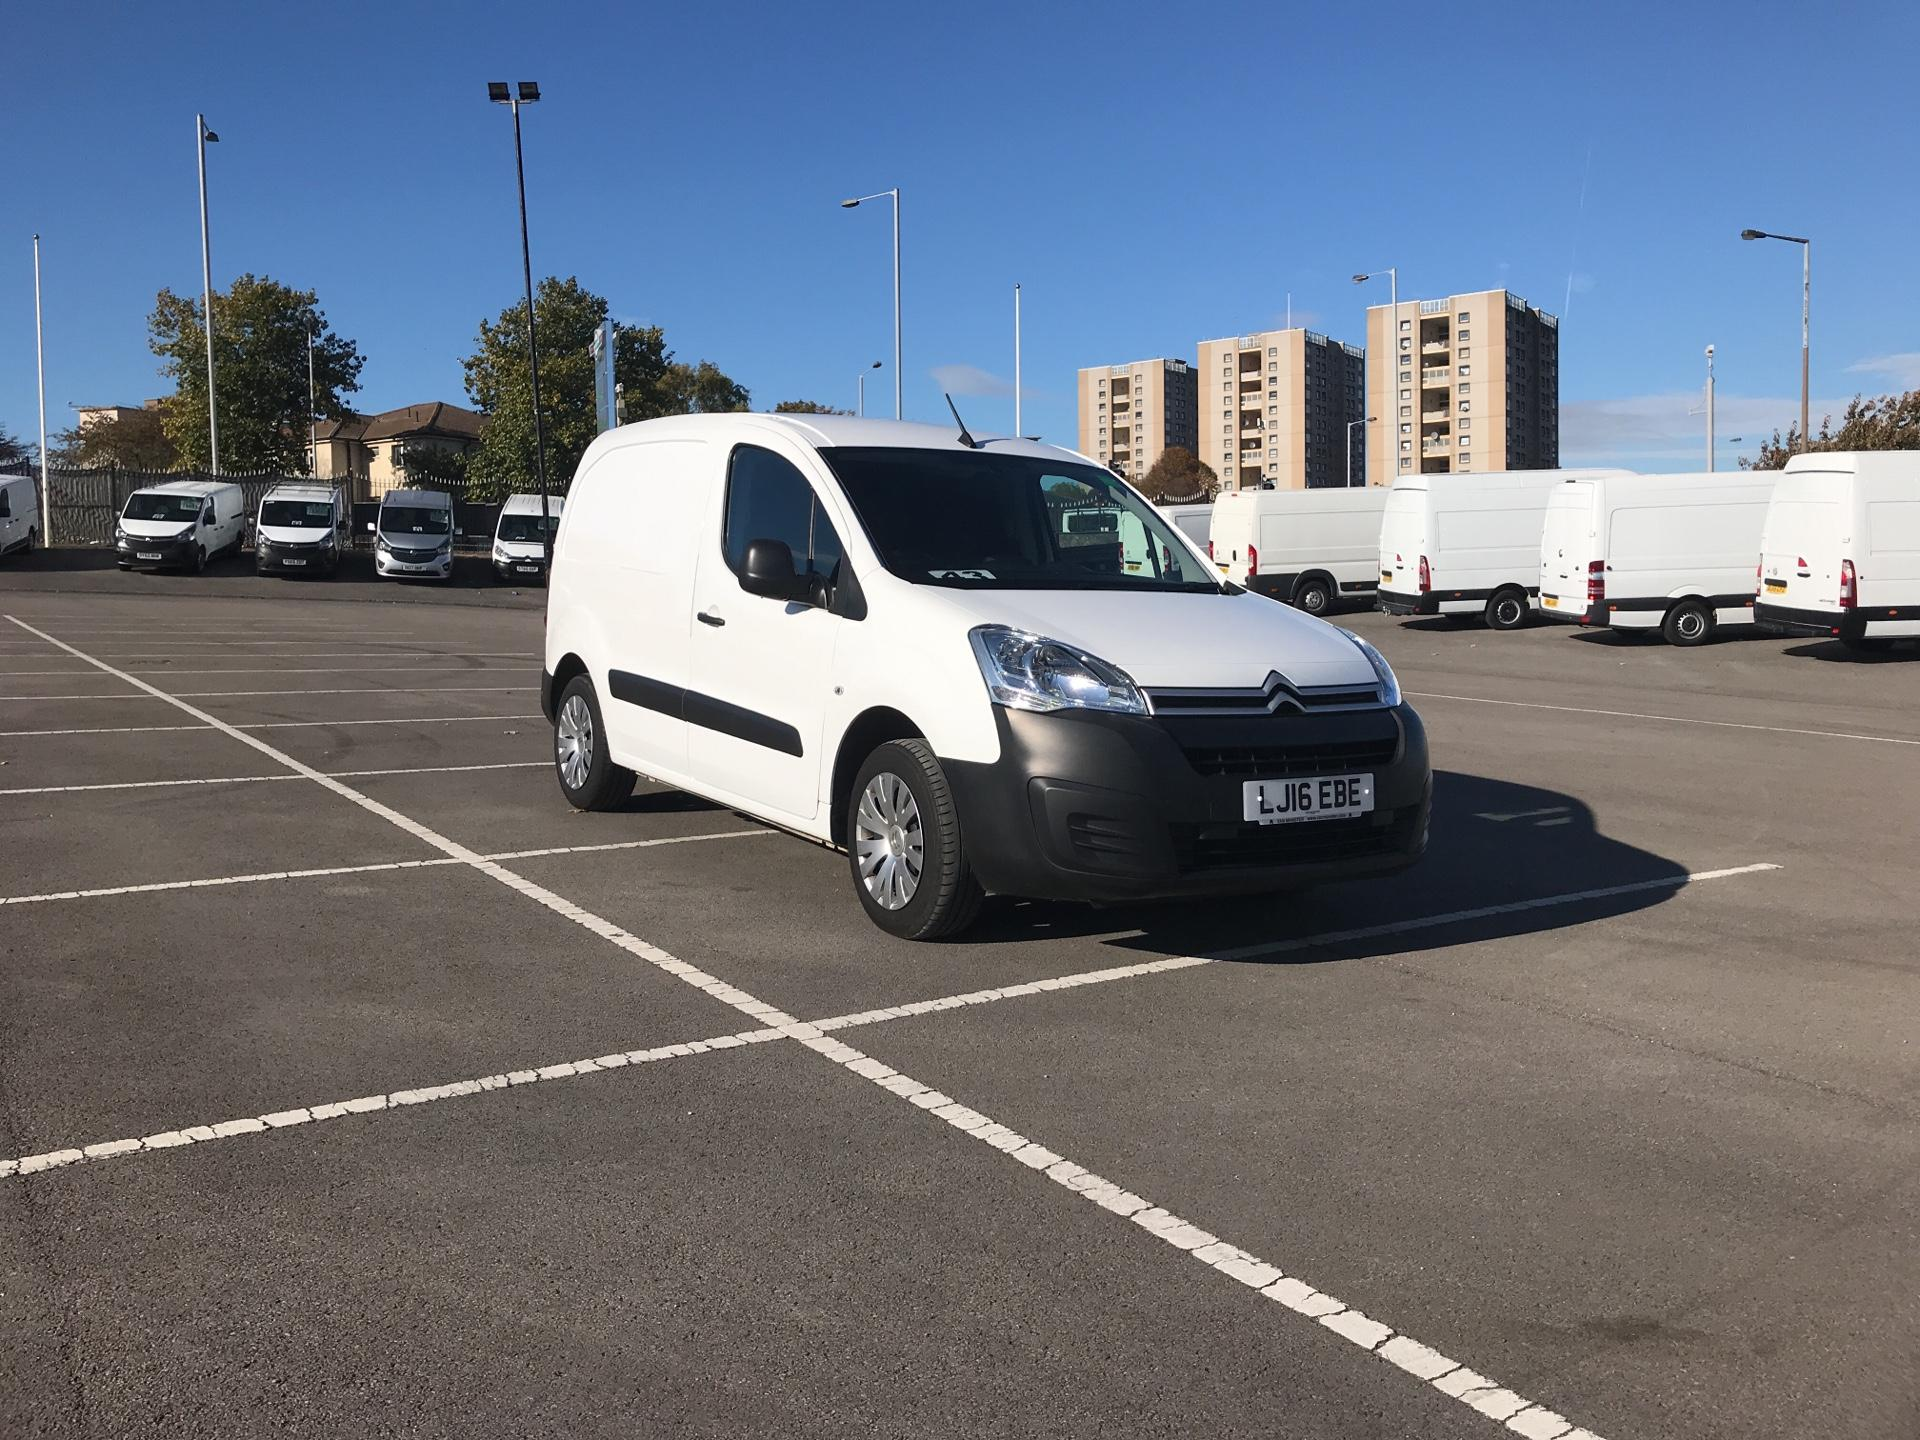 2016 Citroen Berlingo L1 850 1.6 BLUEHDI Enterprise (NON S/S)EURO 6 (LJ16EBE)